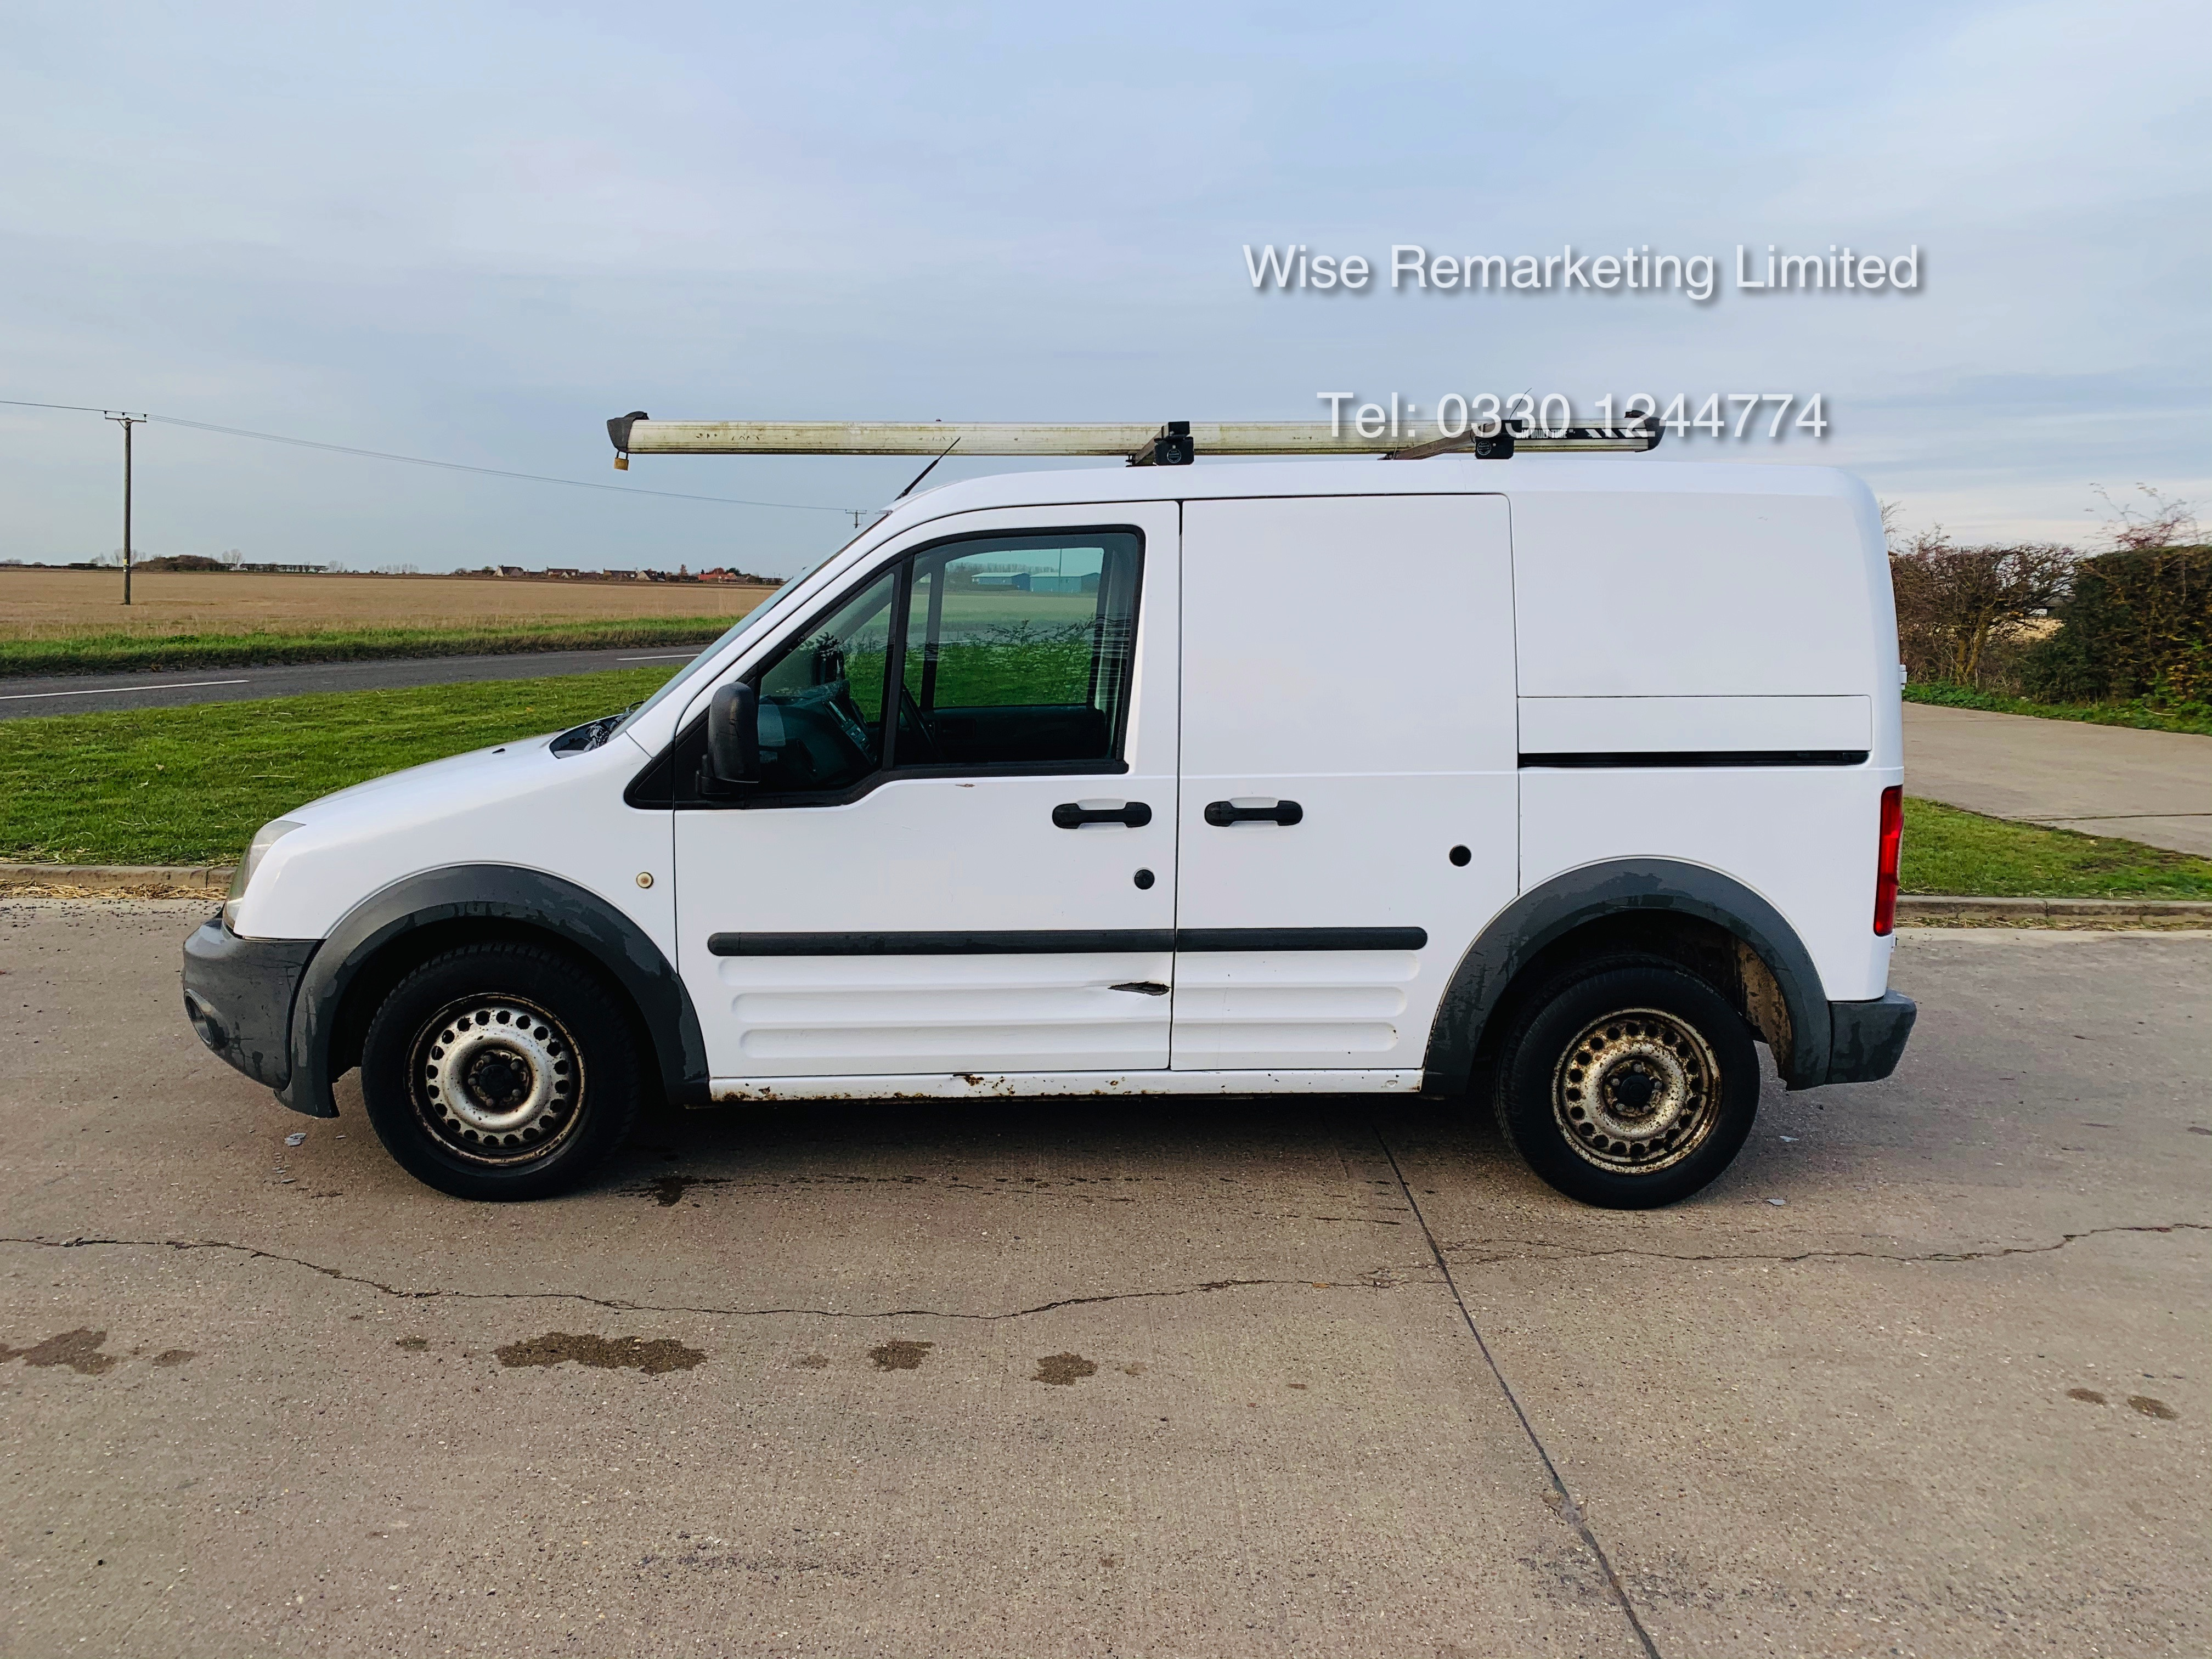 Ford Transit Connect T200 1.8 - 2010 Model - Side Loading Door - Ply Lined - Image 5 of 19